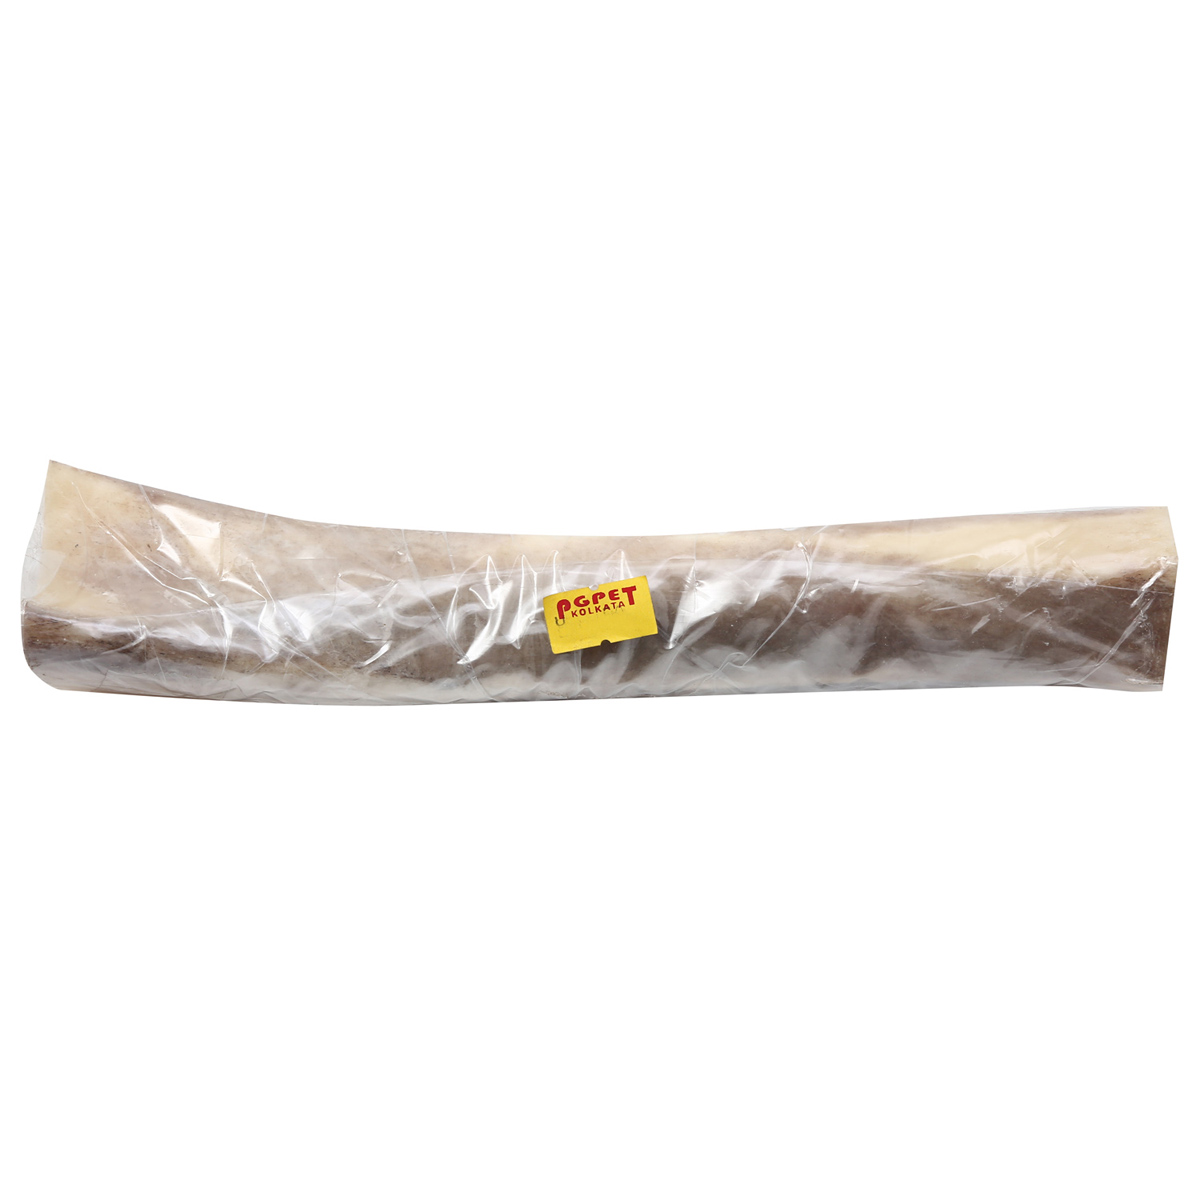 Buy Camel Bone For Dog Treats ,Dog Bones,Dog Chew Bones in low price online at Petindiaonline